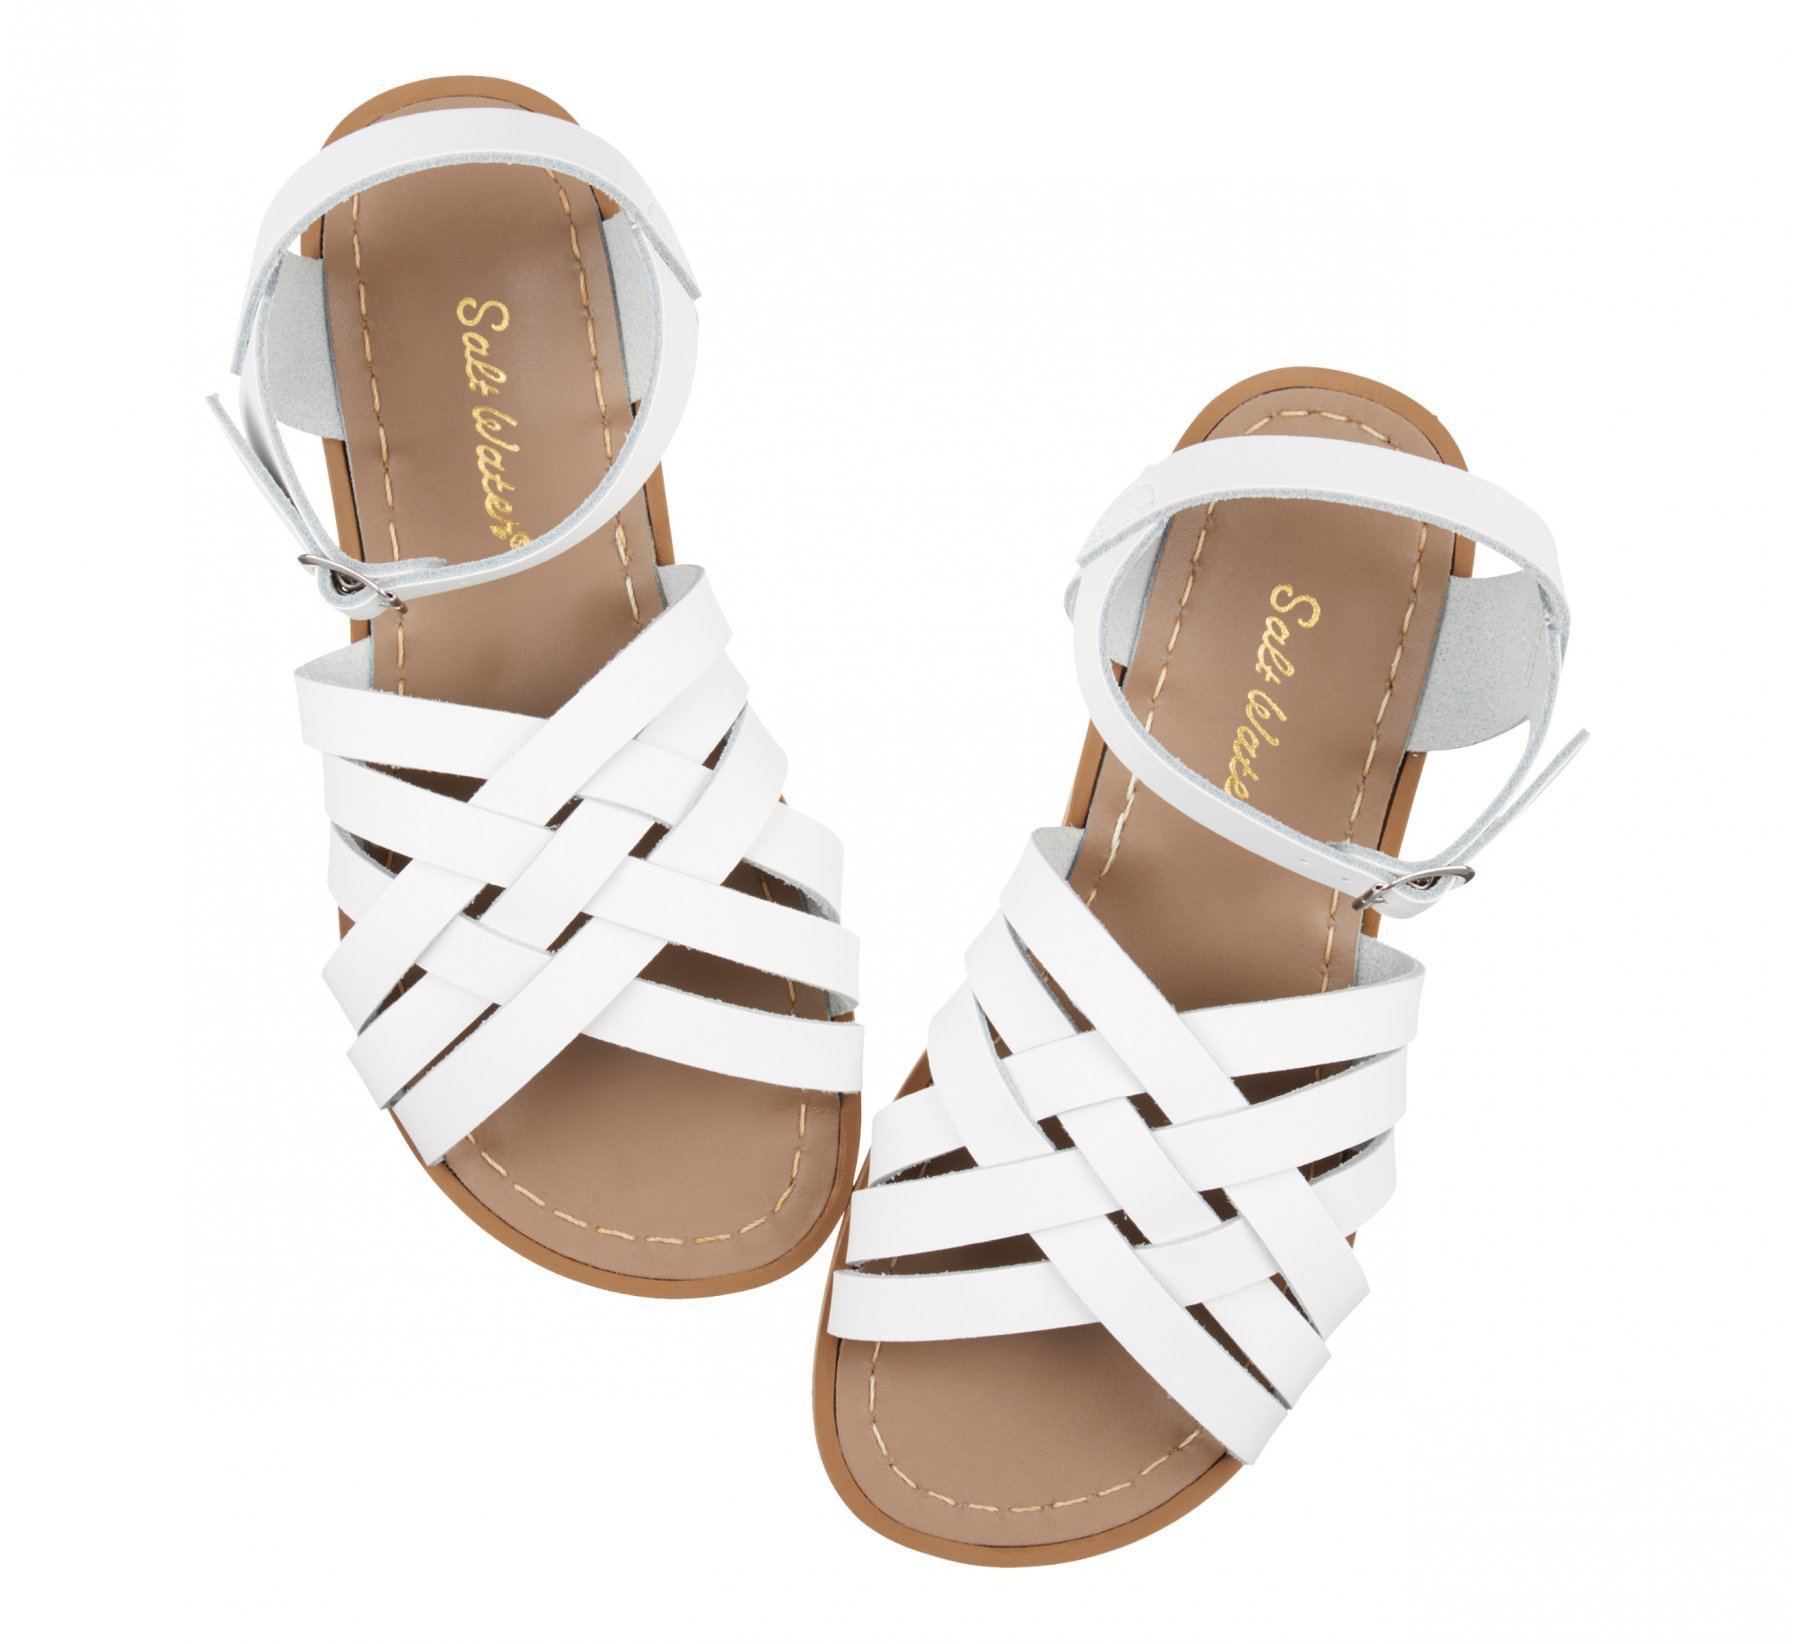 Retro Blanc - Salt Water Sandals